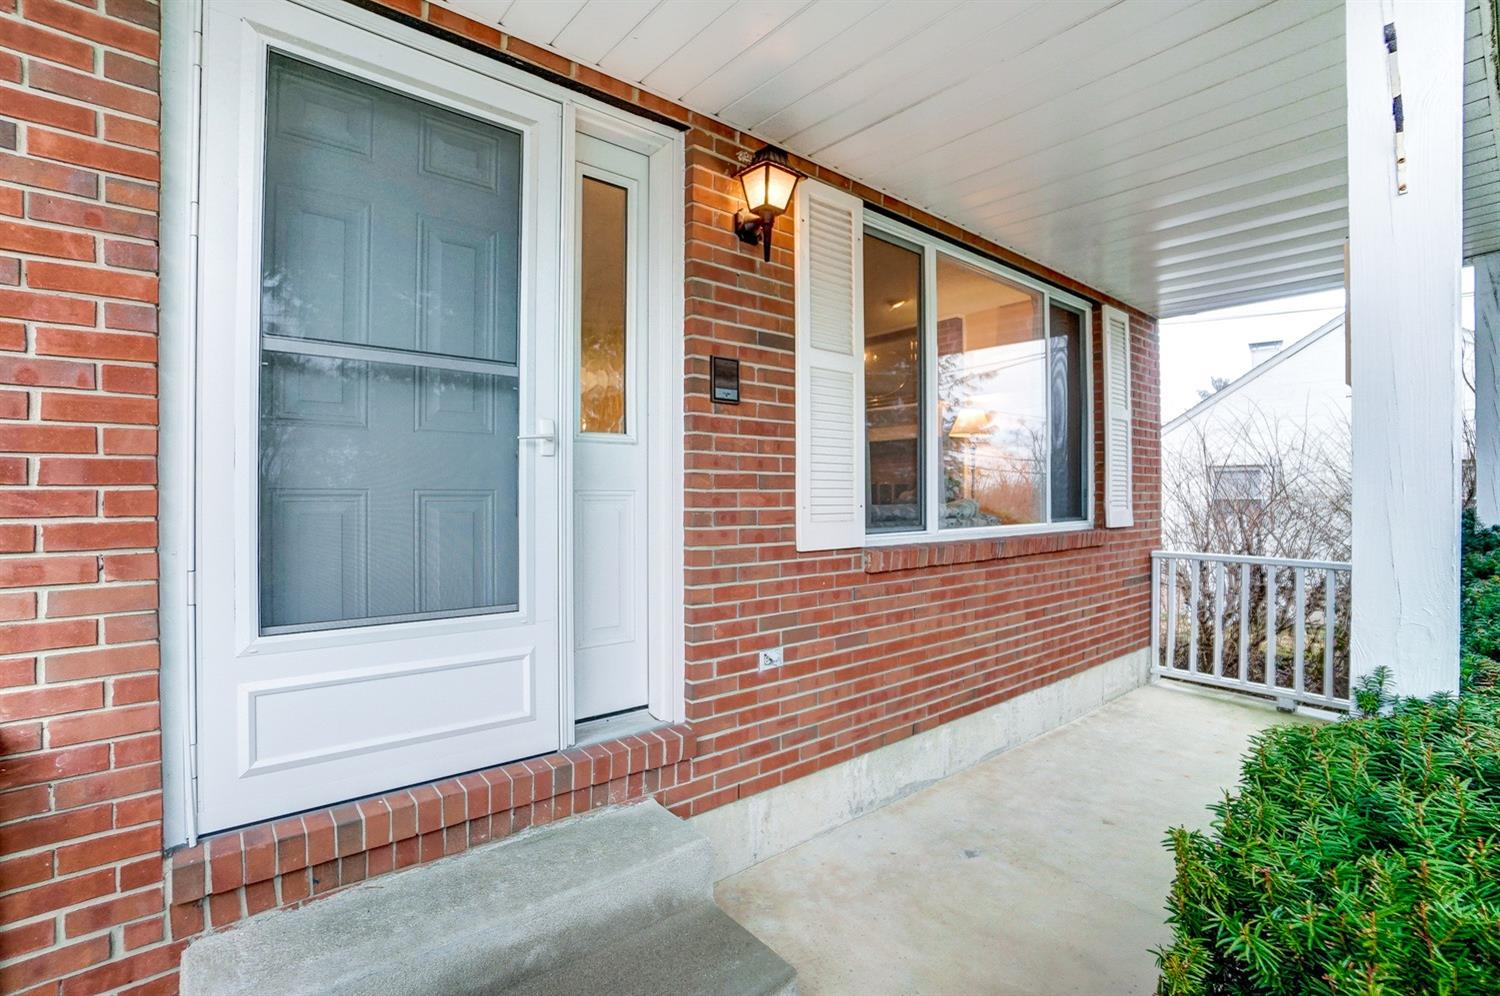 Photo 2 for 412 W Sharon Rd Springdale, OH 45246